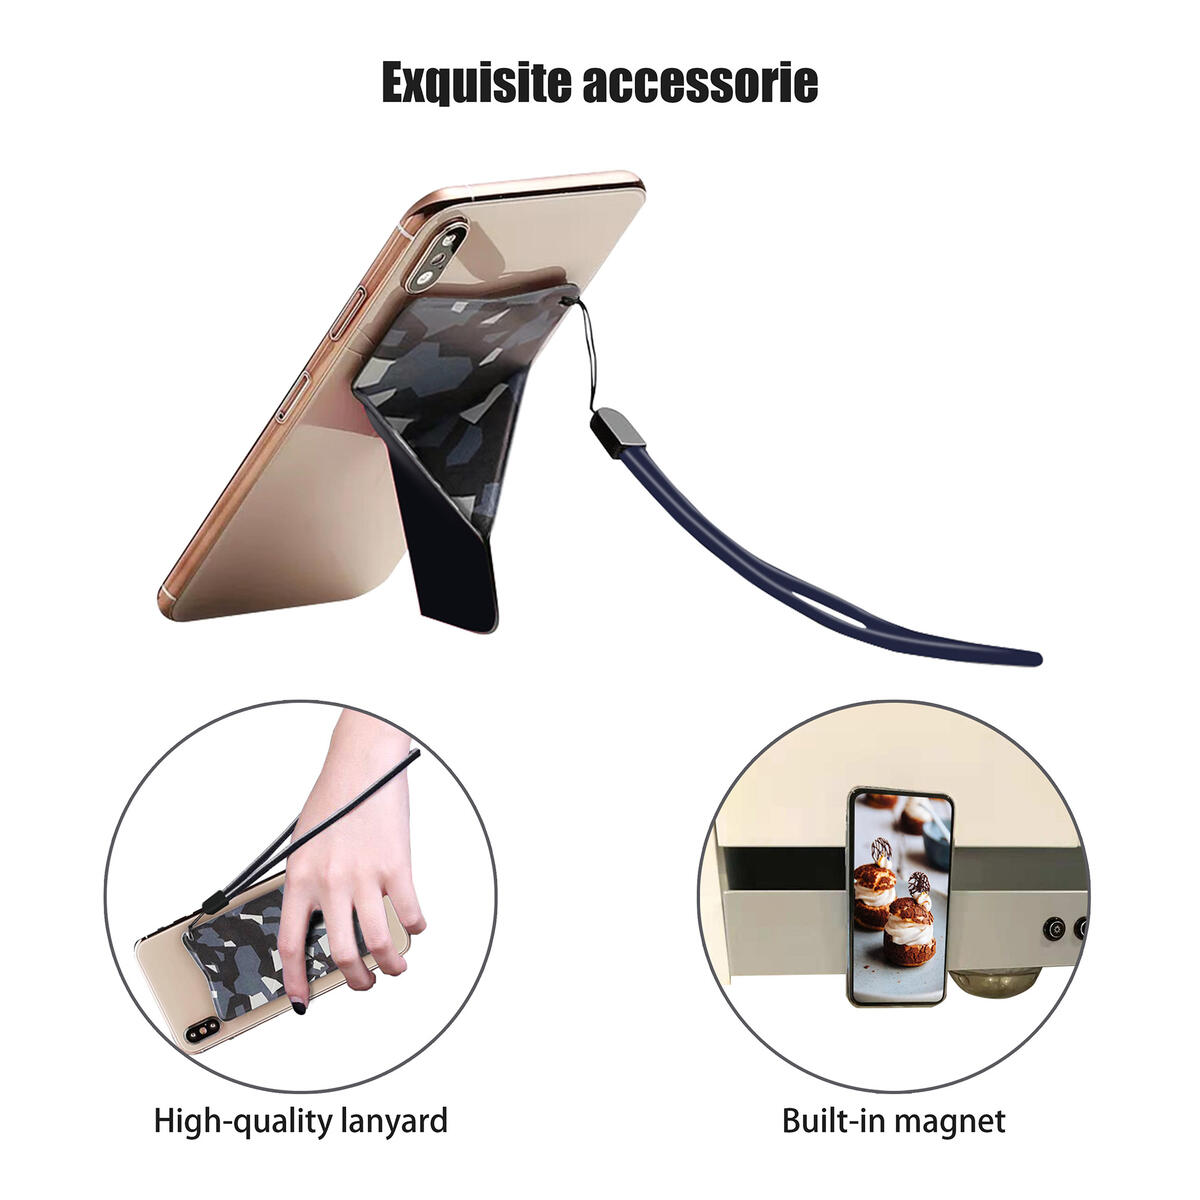 Universal Minimalist Invisible Stand/Holder/Bracket for Phone,Handle/Grip/Strap/Lanyard/Kickstand/Foldable/Magnet/Pocket/Ultrathin/Cell/Smart/iPhone/Android/iPad/Adhesive/Back/Sticker(Navy Camouflage)